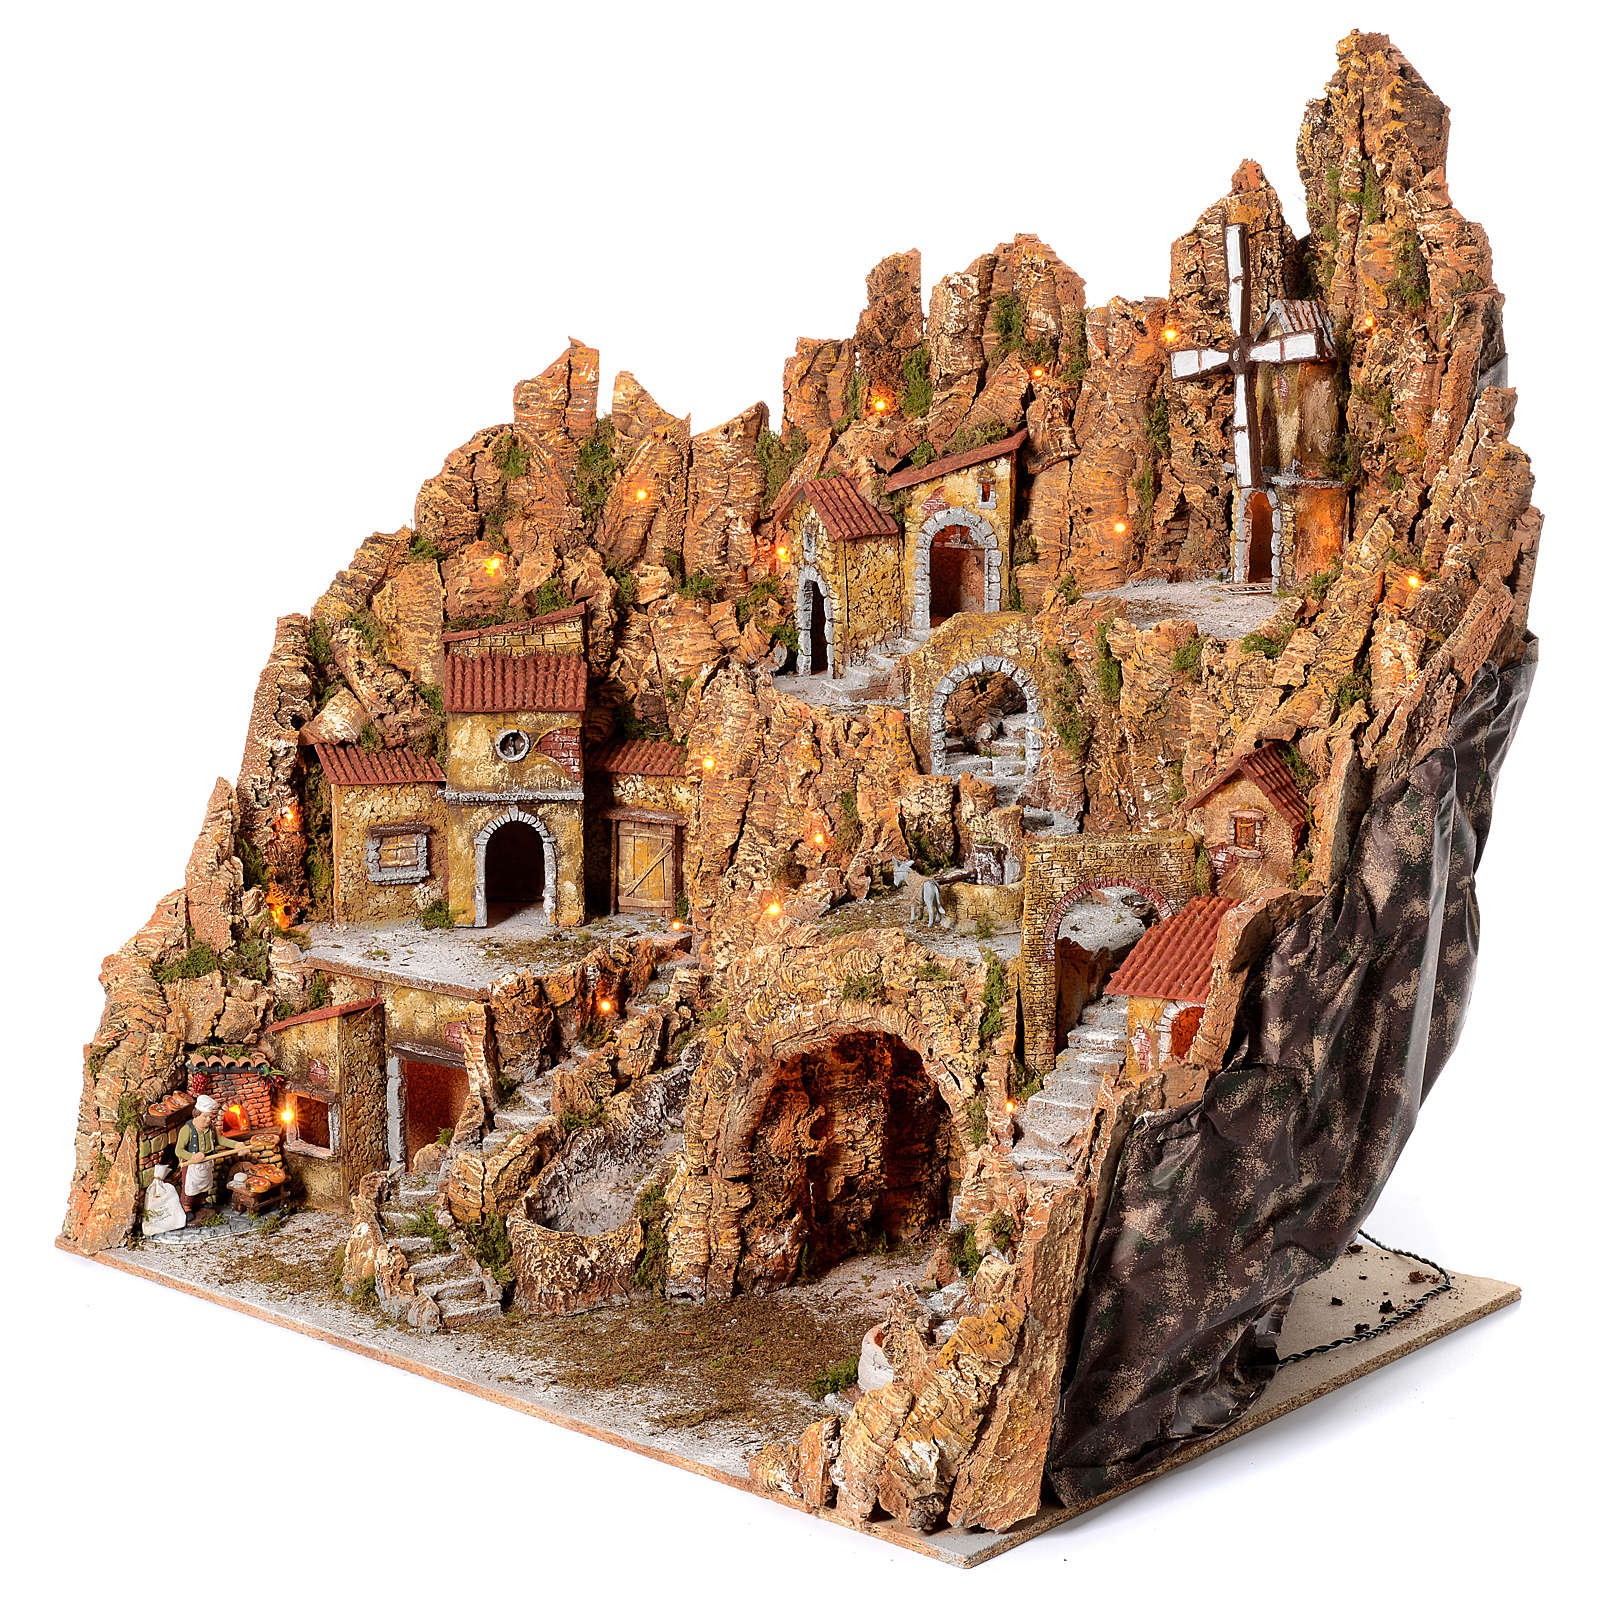 Illuminated Neapolitan nativity scene with mill hut and pizza maker moving  105X95X85 4